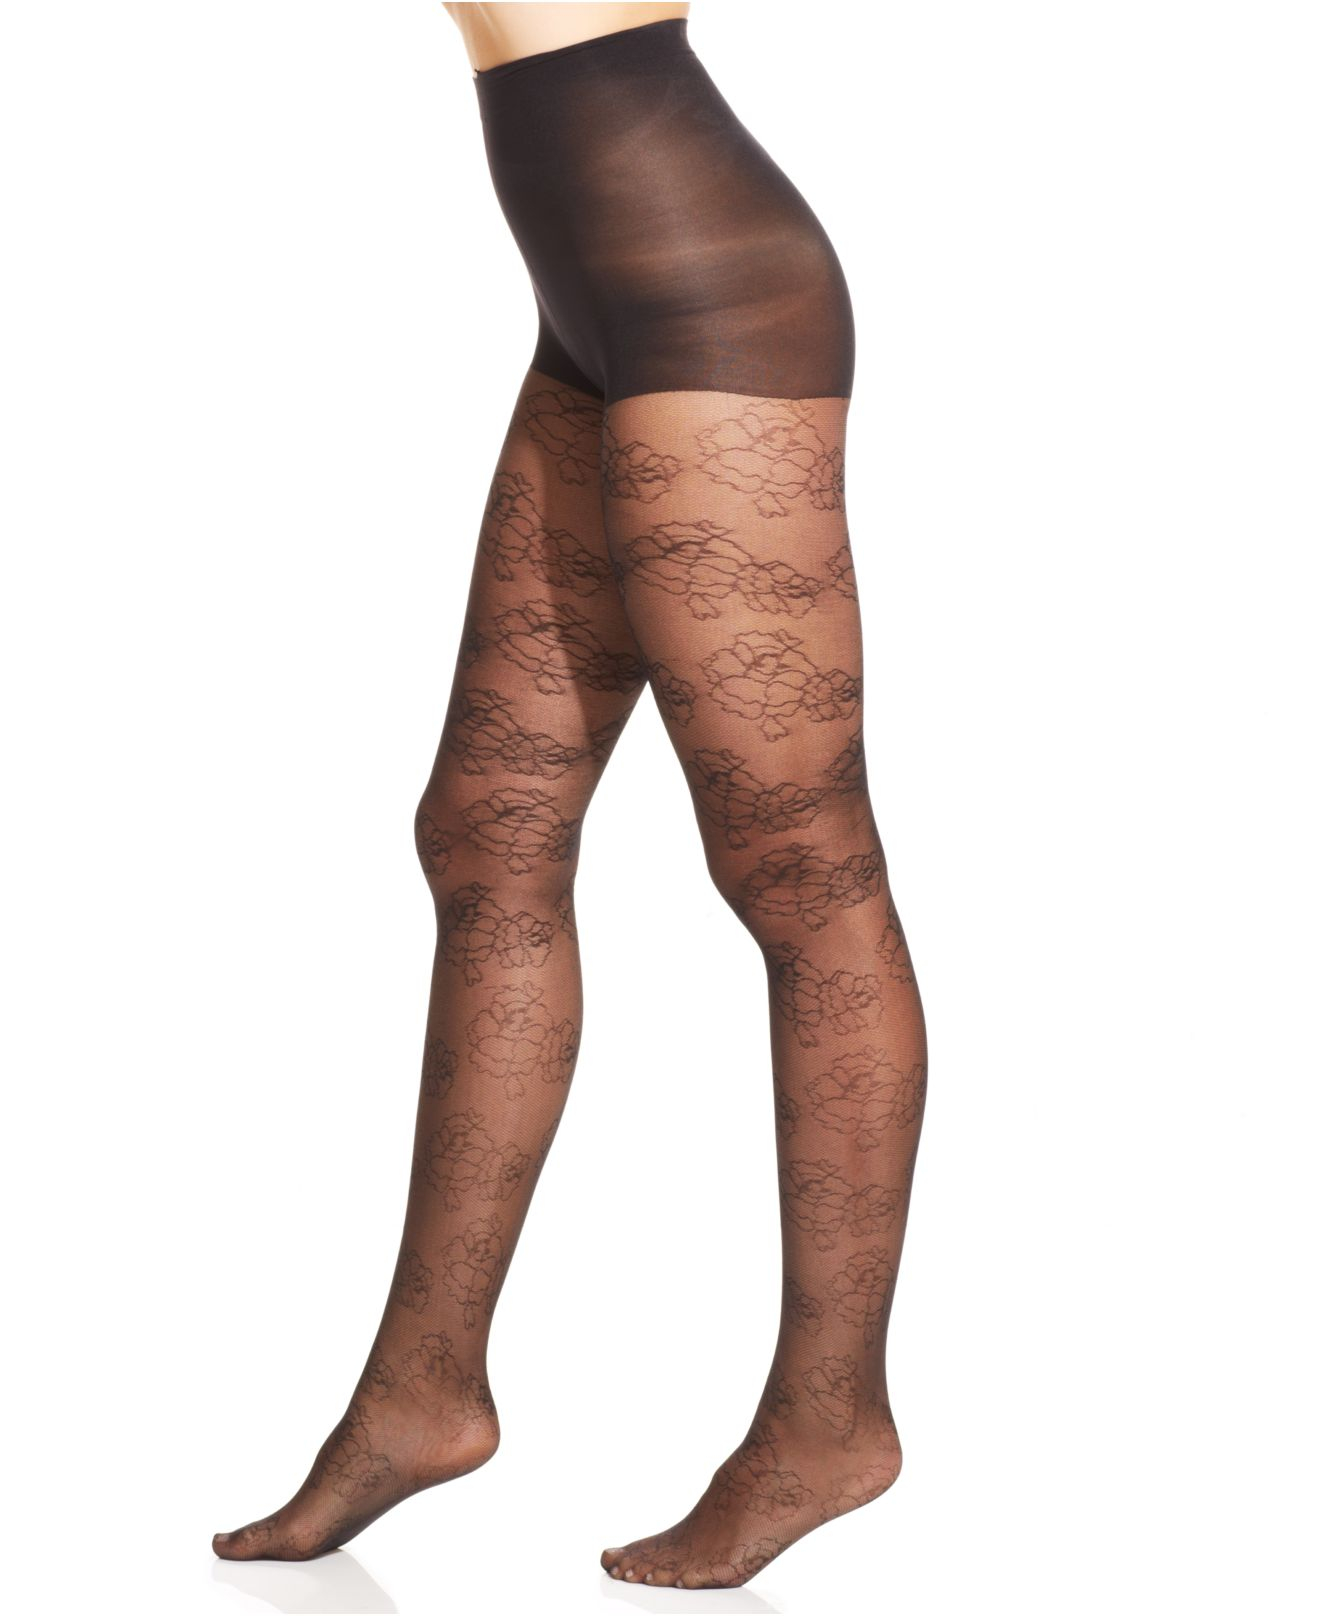 336f336af96 Hue Fine Floral Sheer Tights With Control Top in Natural - Lyst